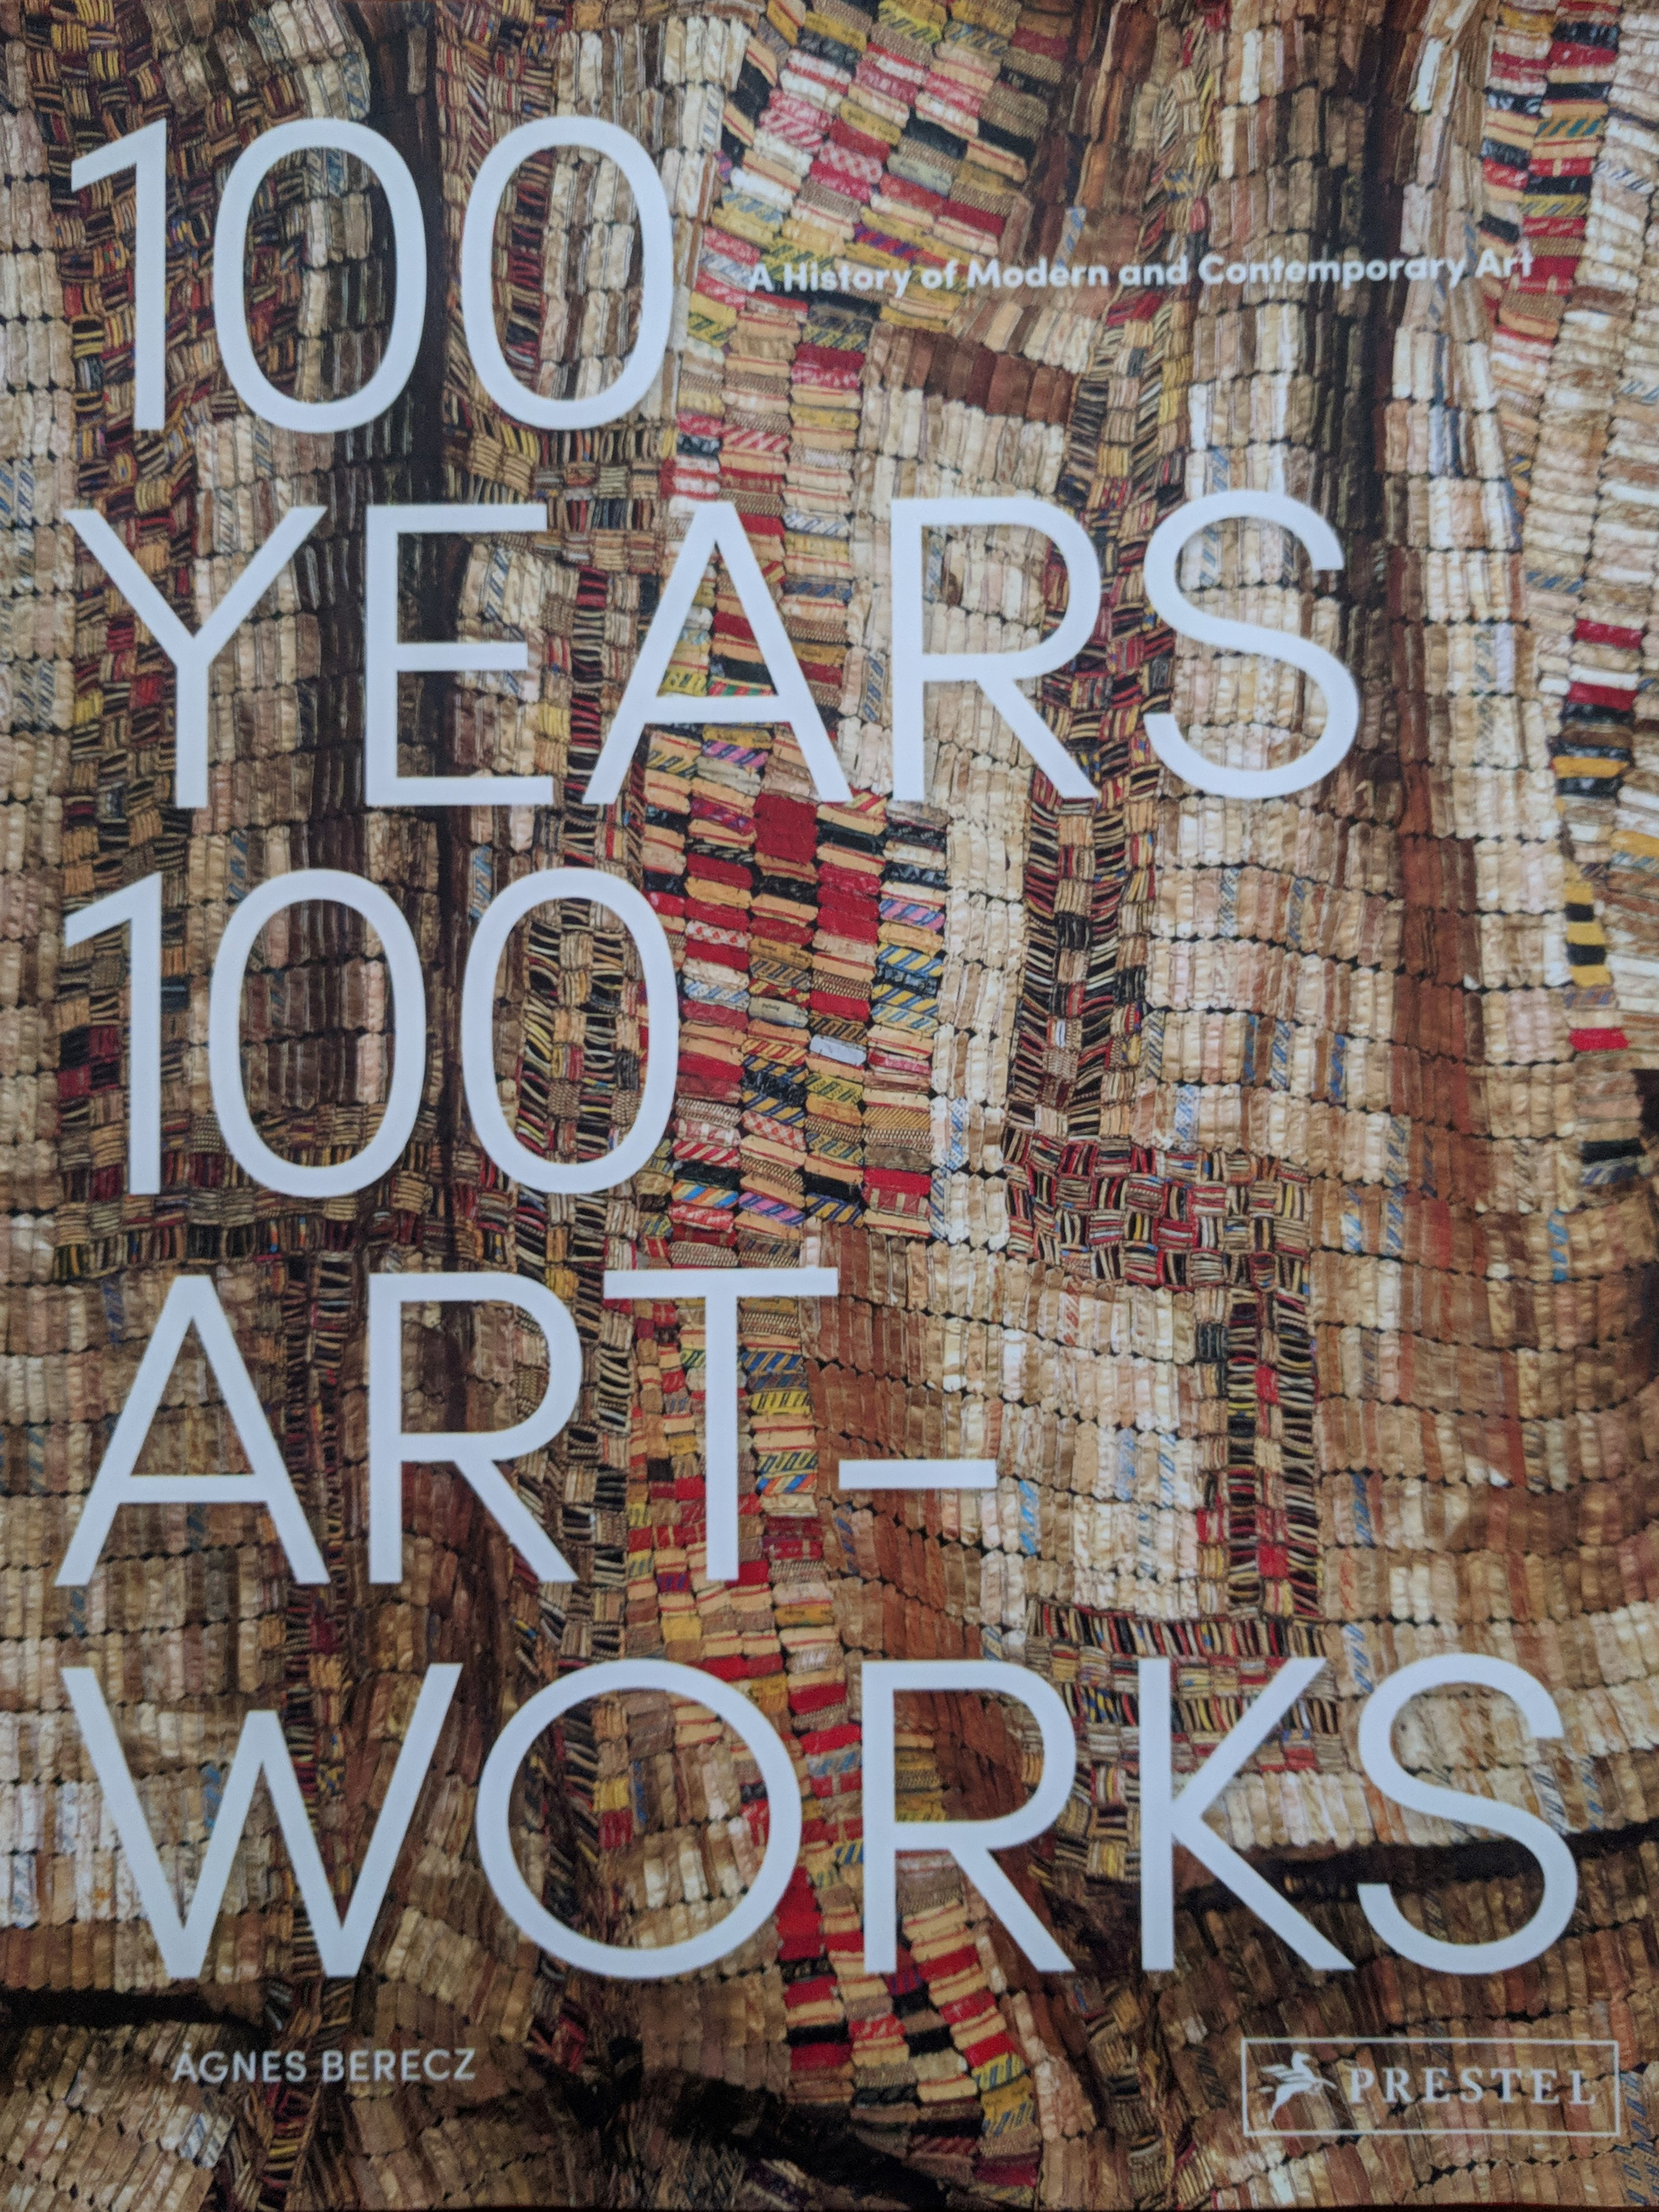 100 Years 100 Artworks: A History of Modern and Contemporary Art